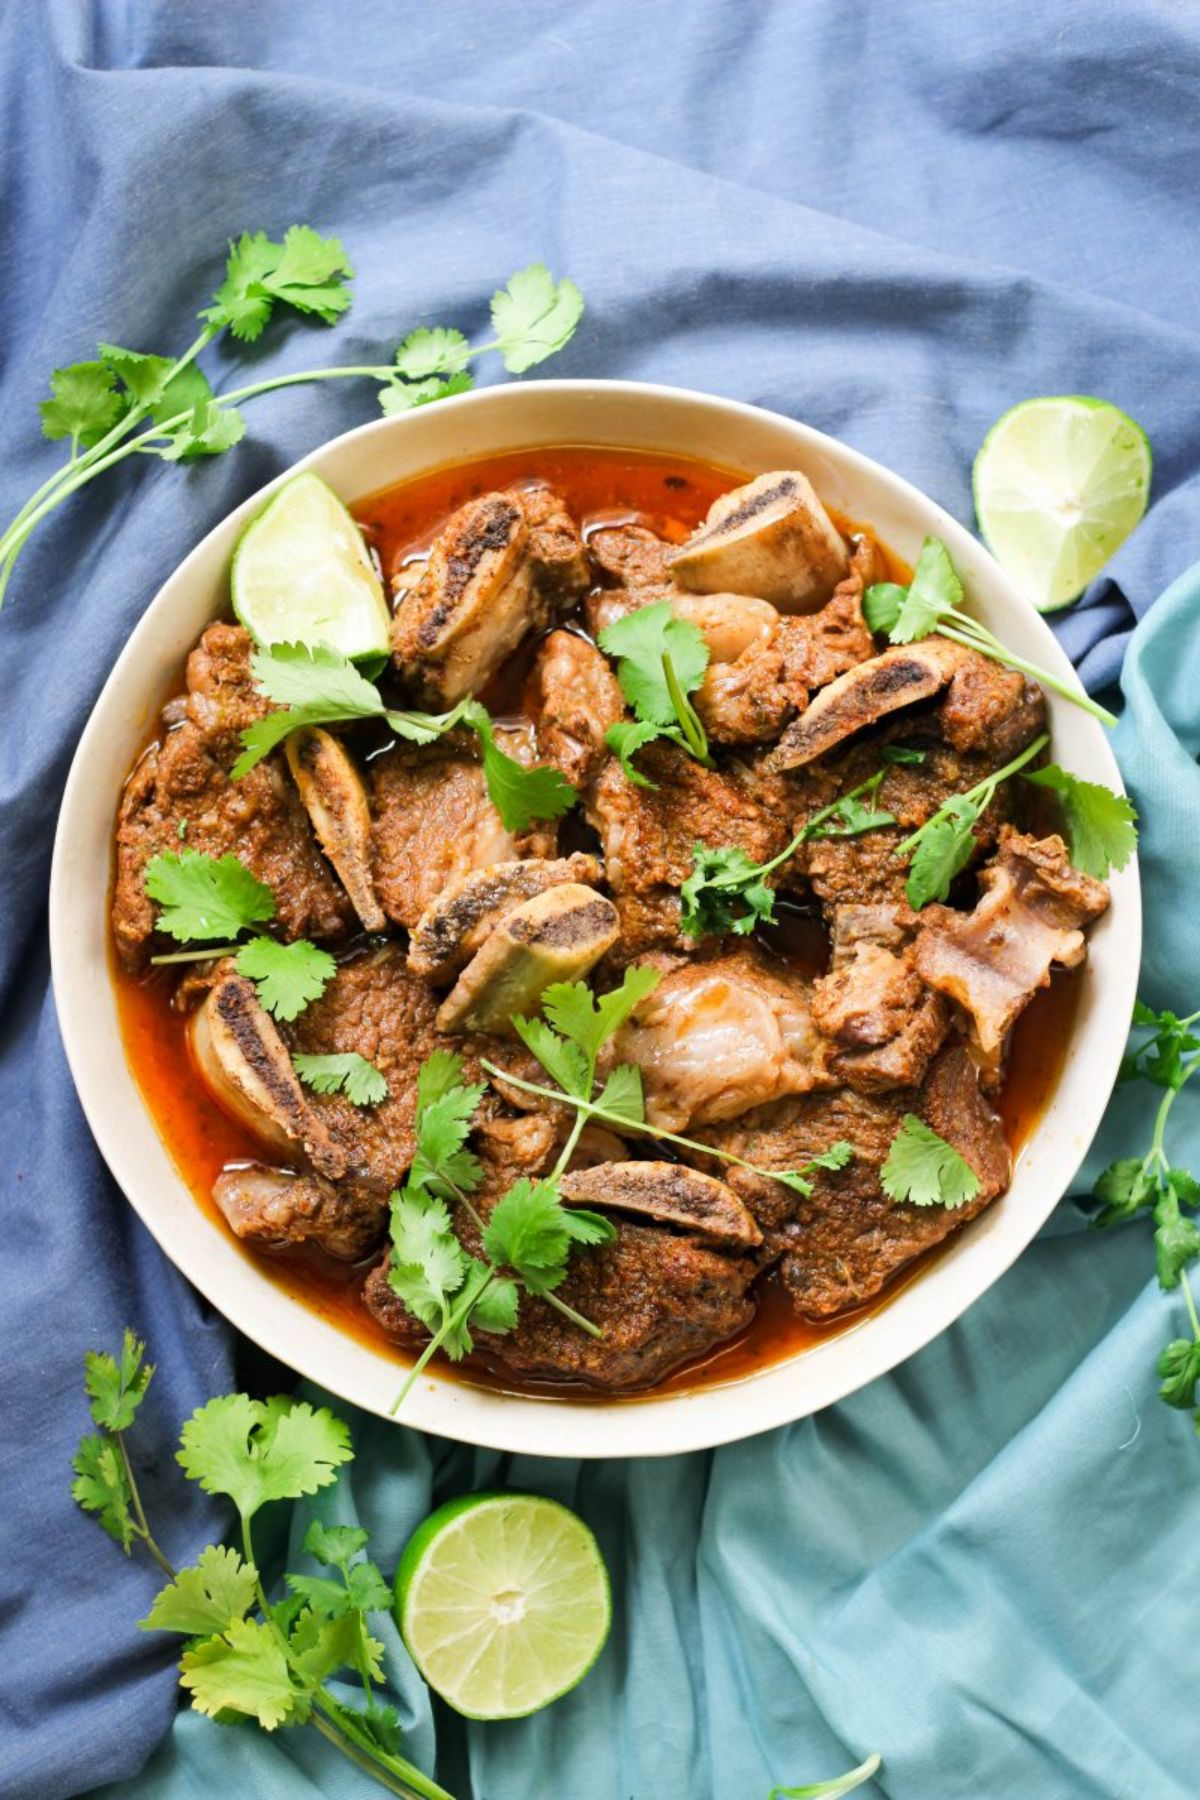 On a blue, ruffled cloth is a round white bowl filled with short rib stew and sprinkled with lime wedges and parsley